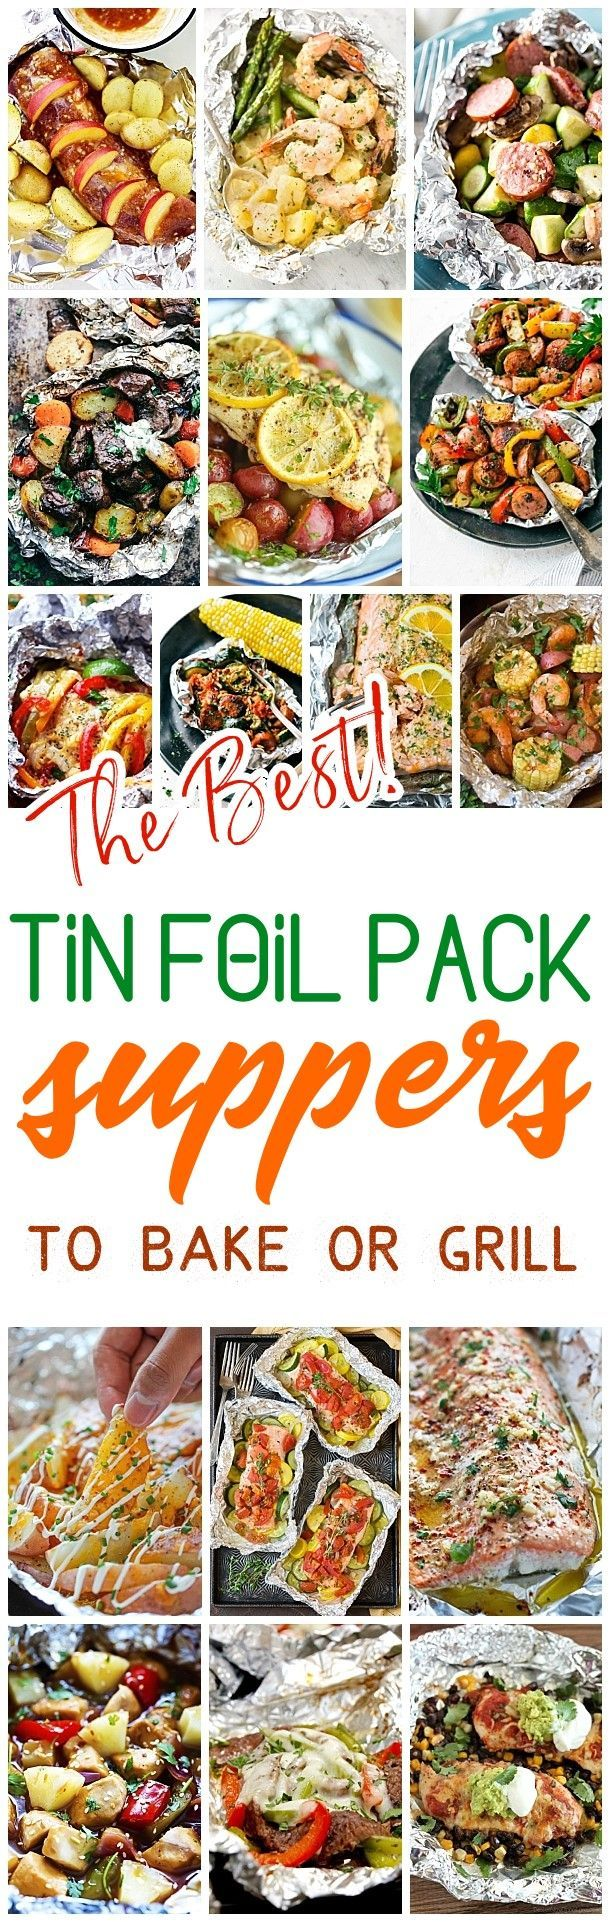 The Best Tin Foil Pack Suppers Recipes to Bake or Grill - Easy meal prep and easy cleanup! delicious chicken, beef, salmon, pork, shrimp and chicken tin foil packet dinners you and your family can enjoy making in the oven all year long, throwing on the backyard grill or tossing in the campfire coals this summer! Dreaming in DIY  #tinfoilsuppers #tinfoildinners #foilpacketmeals #foilpackrecipes #mealprep